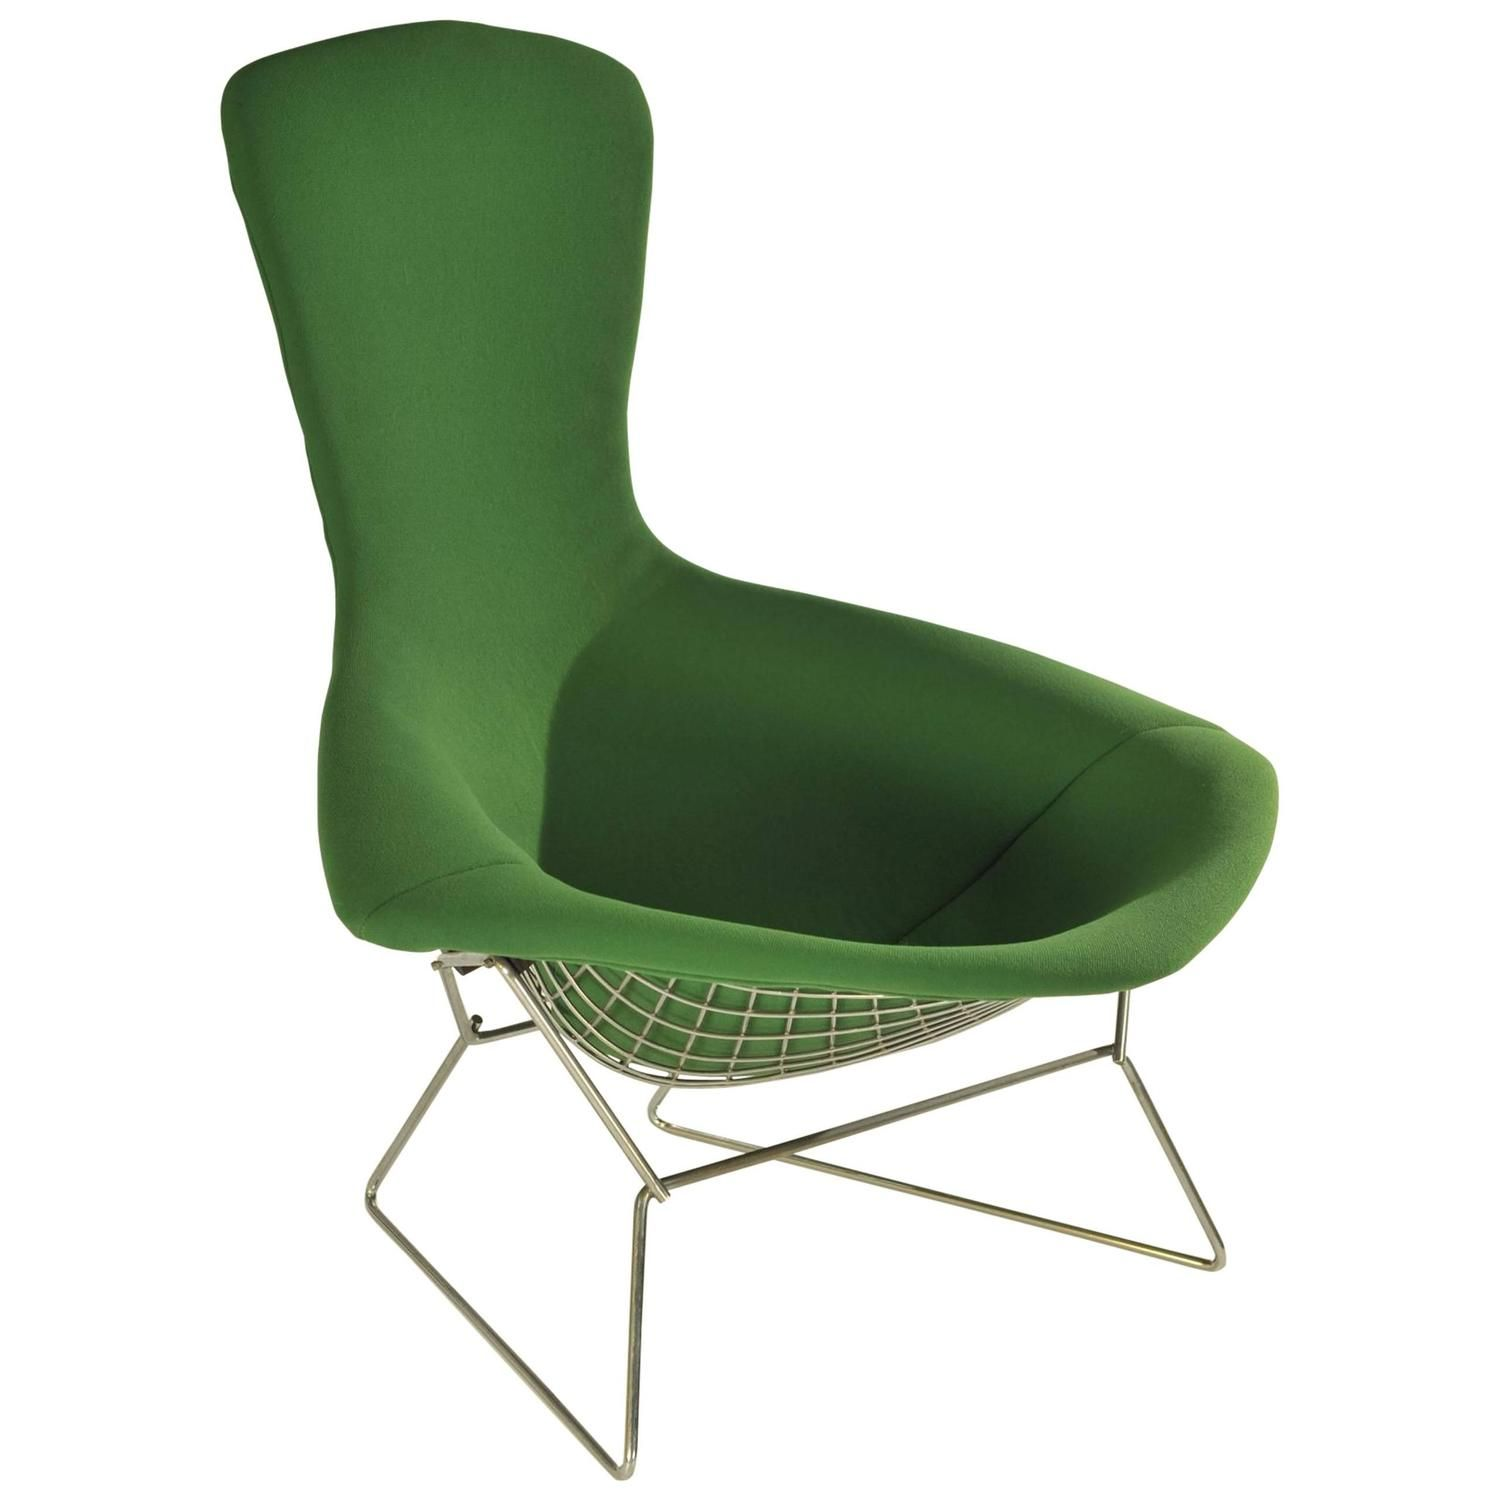 Green Bird Chair by Harry Bertoia for Knoll, USA | Chairs ...